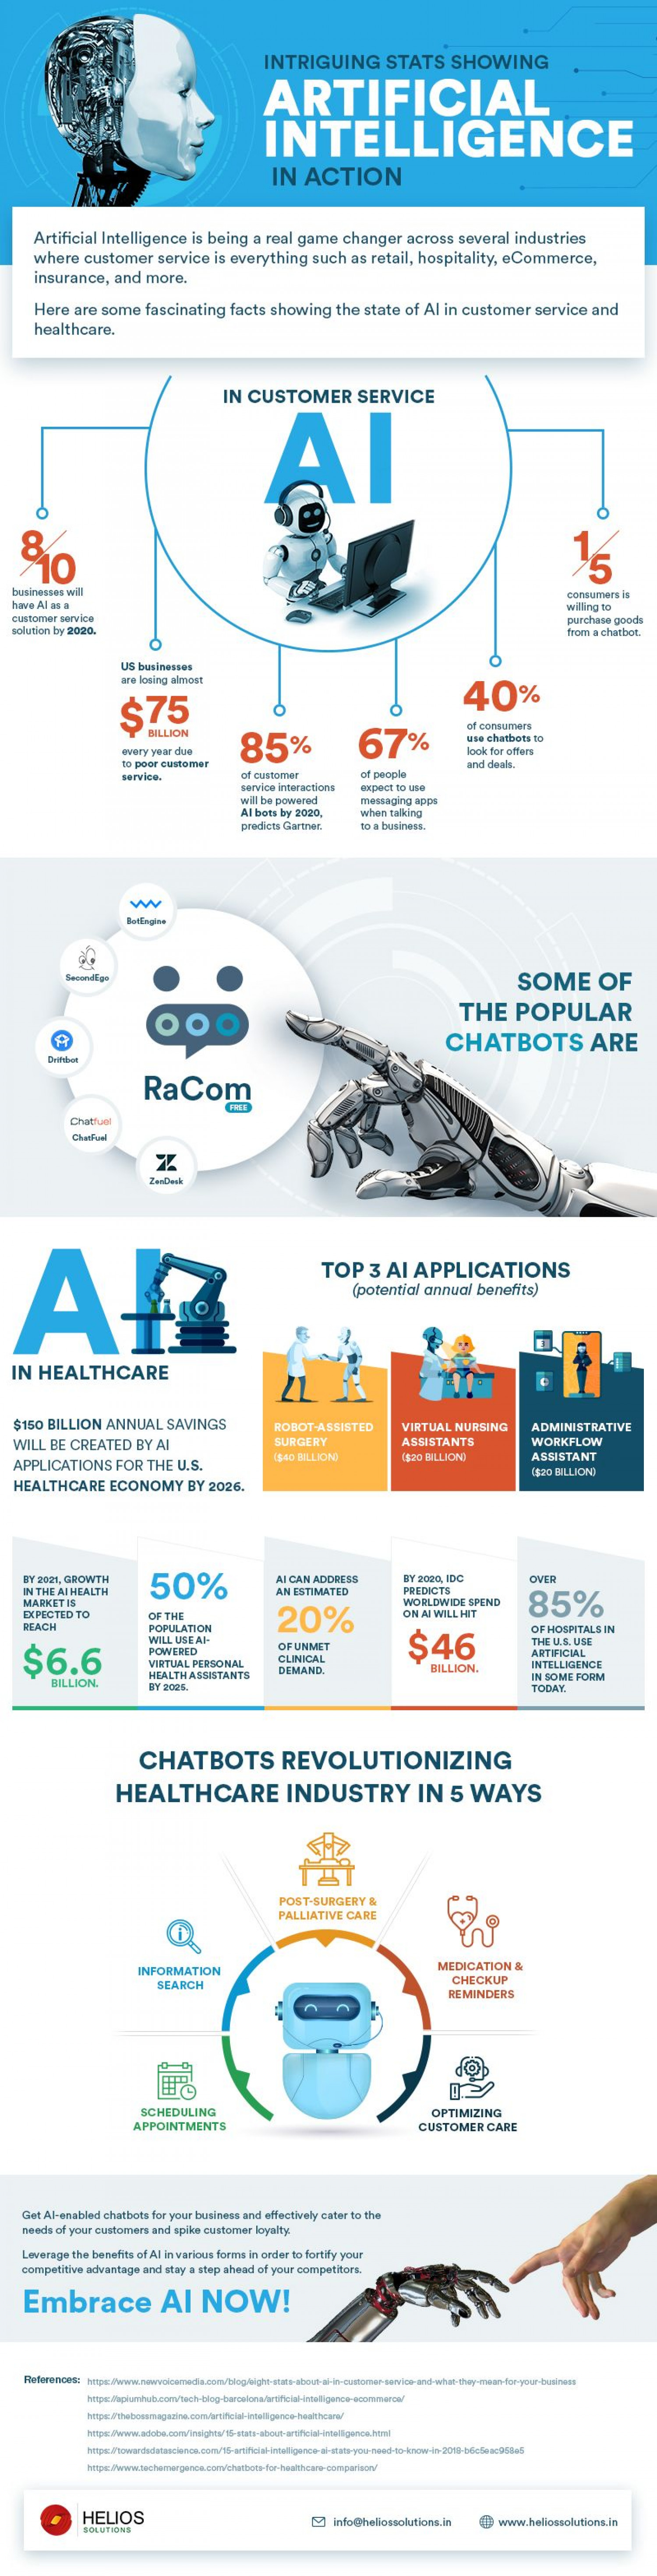 Intriguing Stats Showing Artificial Intelligence in Action Infographic